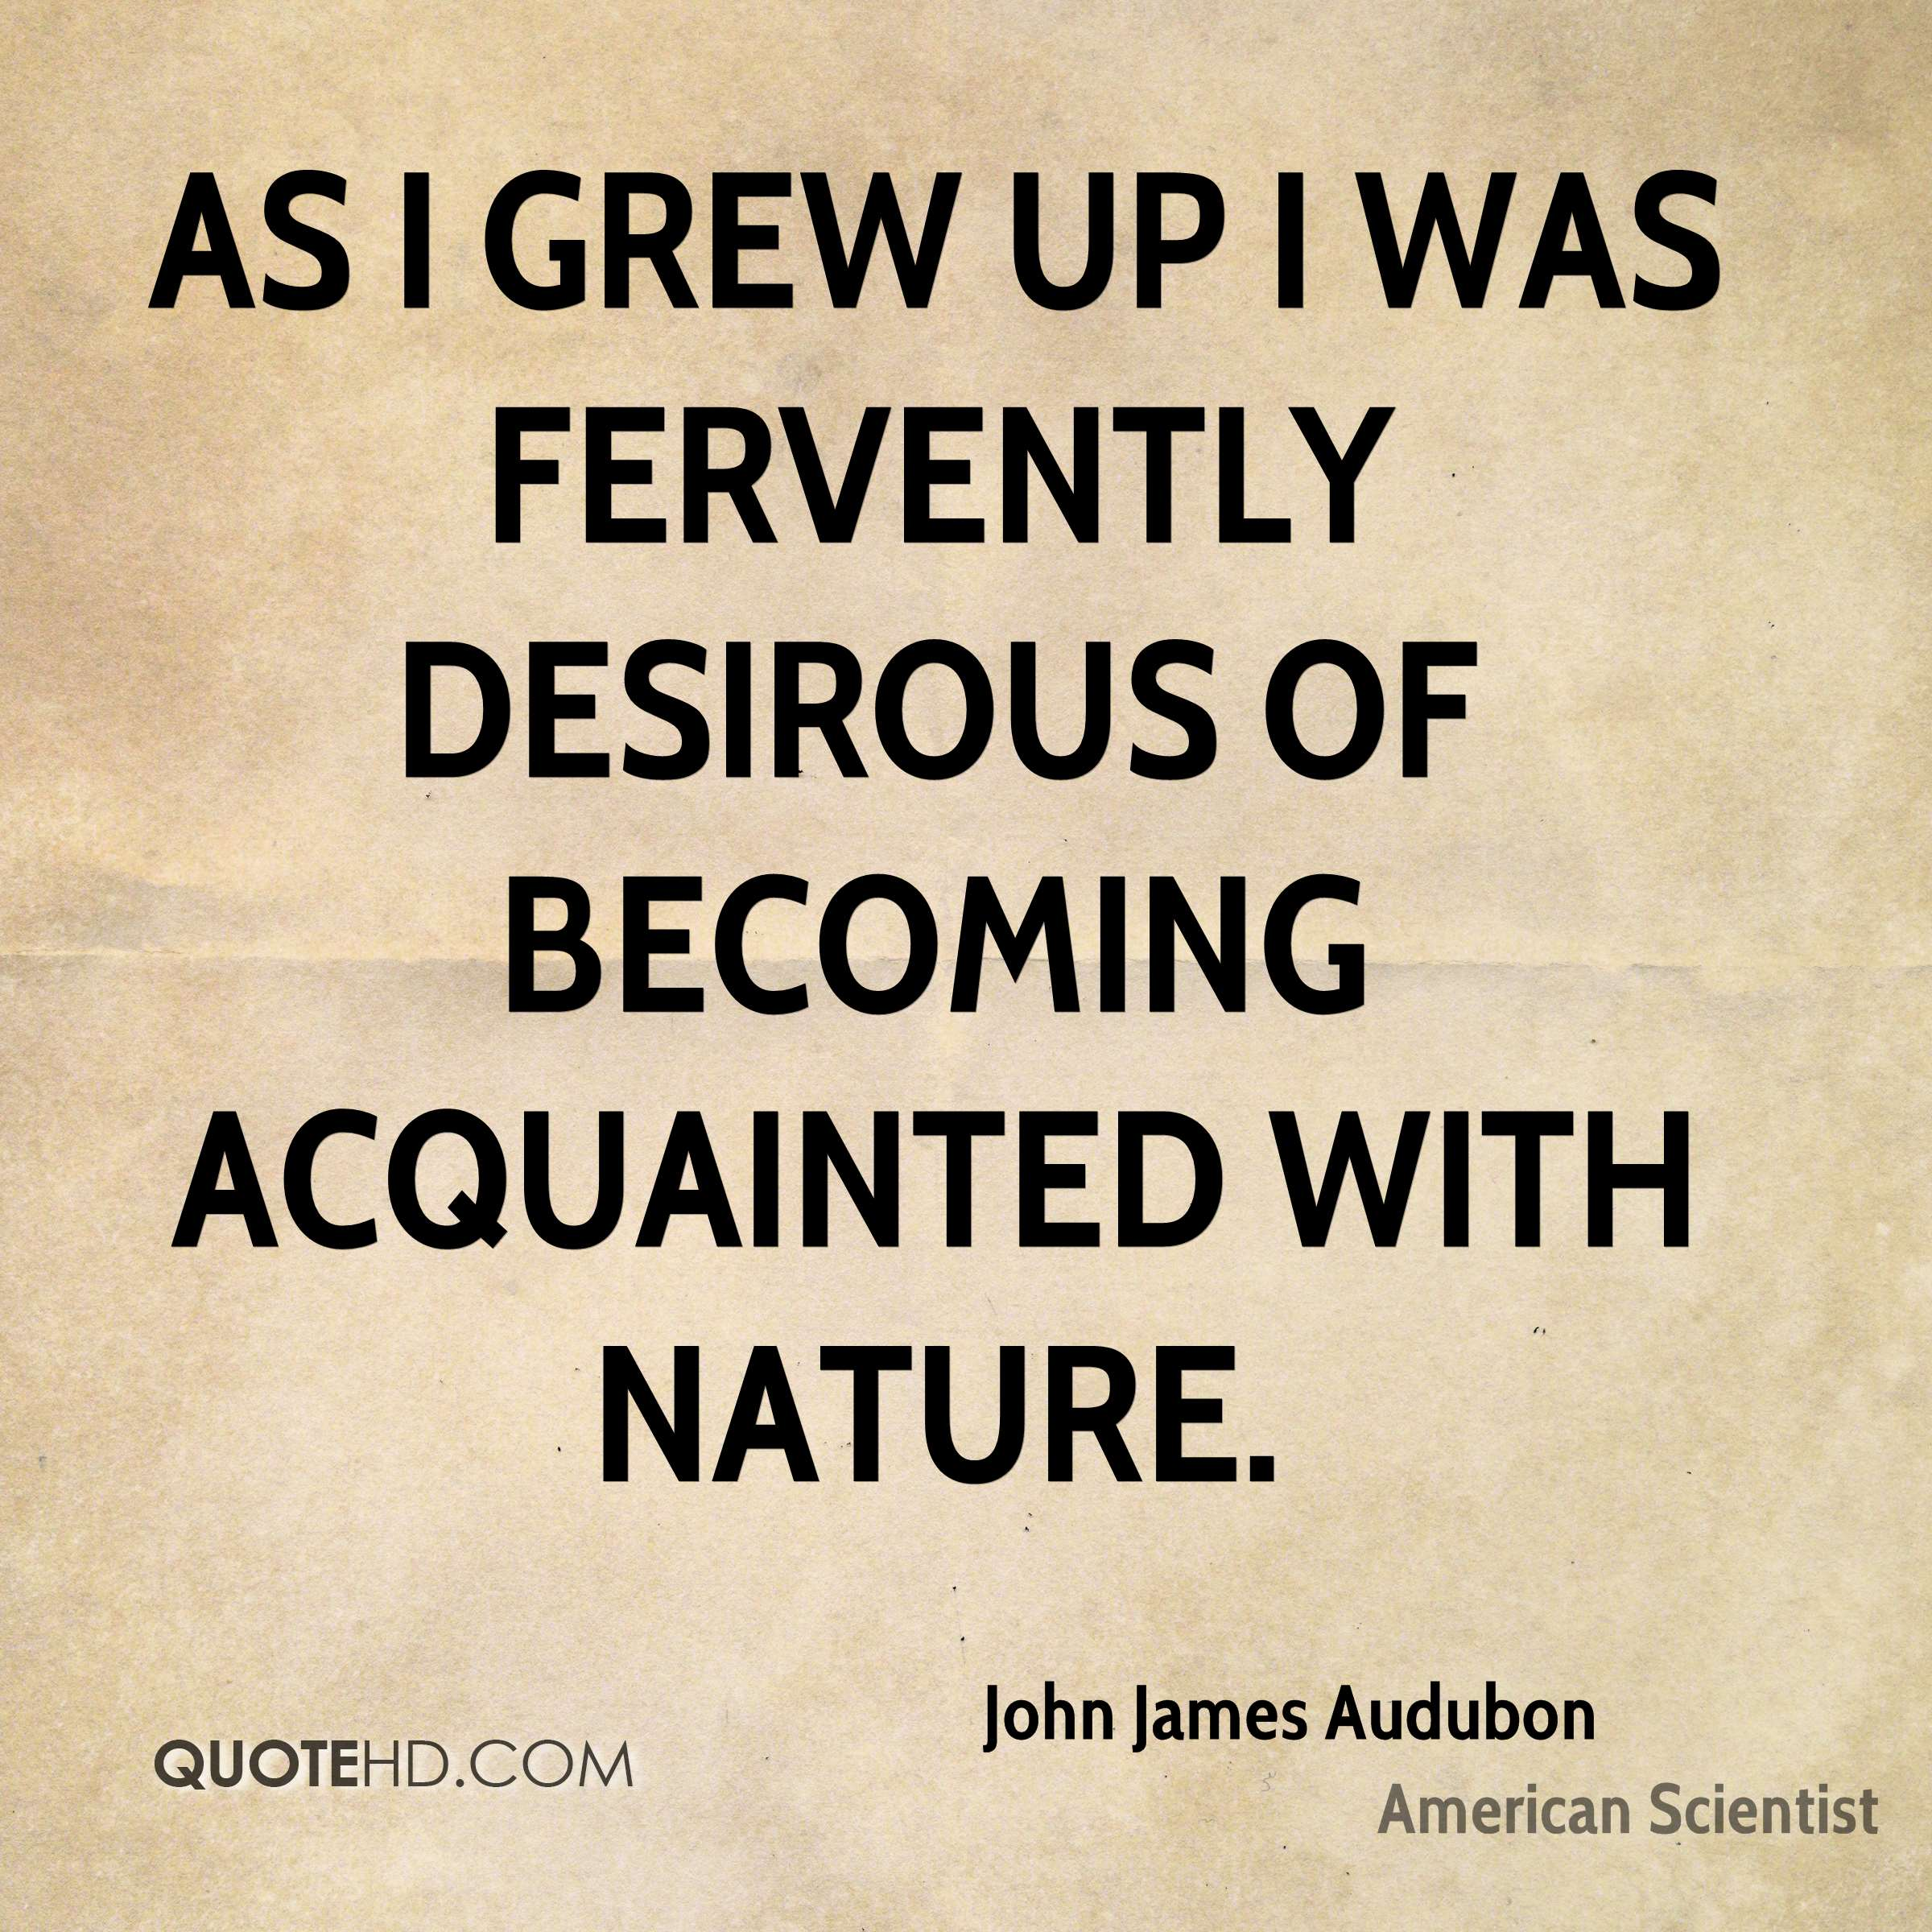 As I grew up I was fervently desirous of becoming acquainted with Nature.